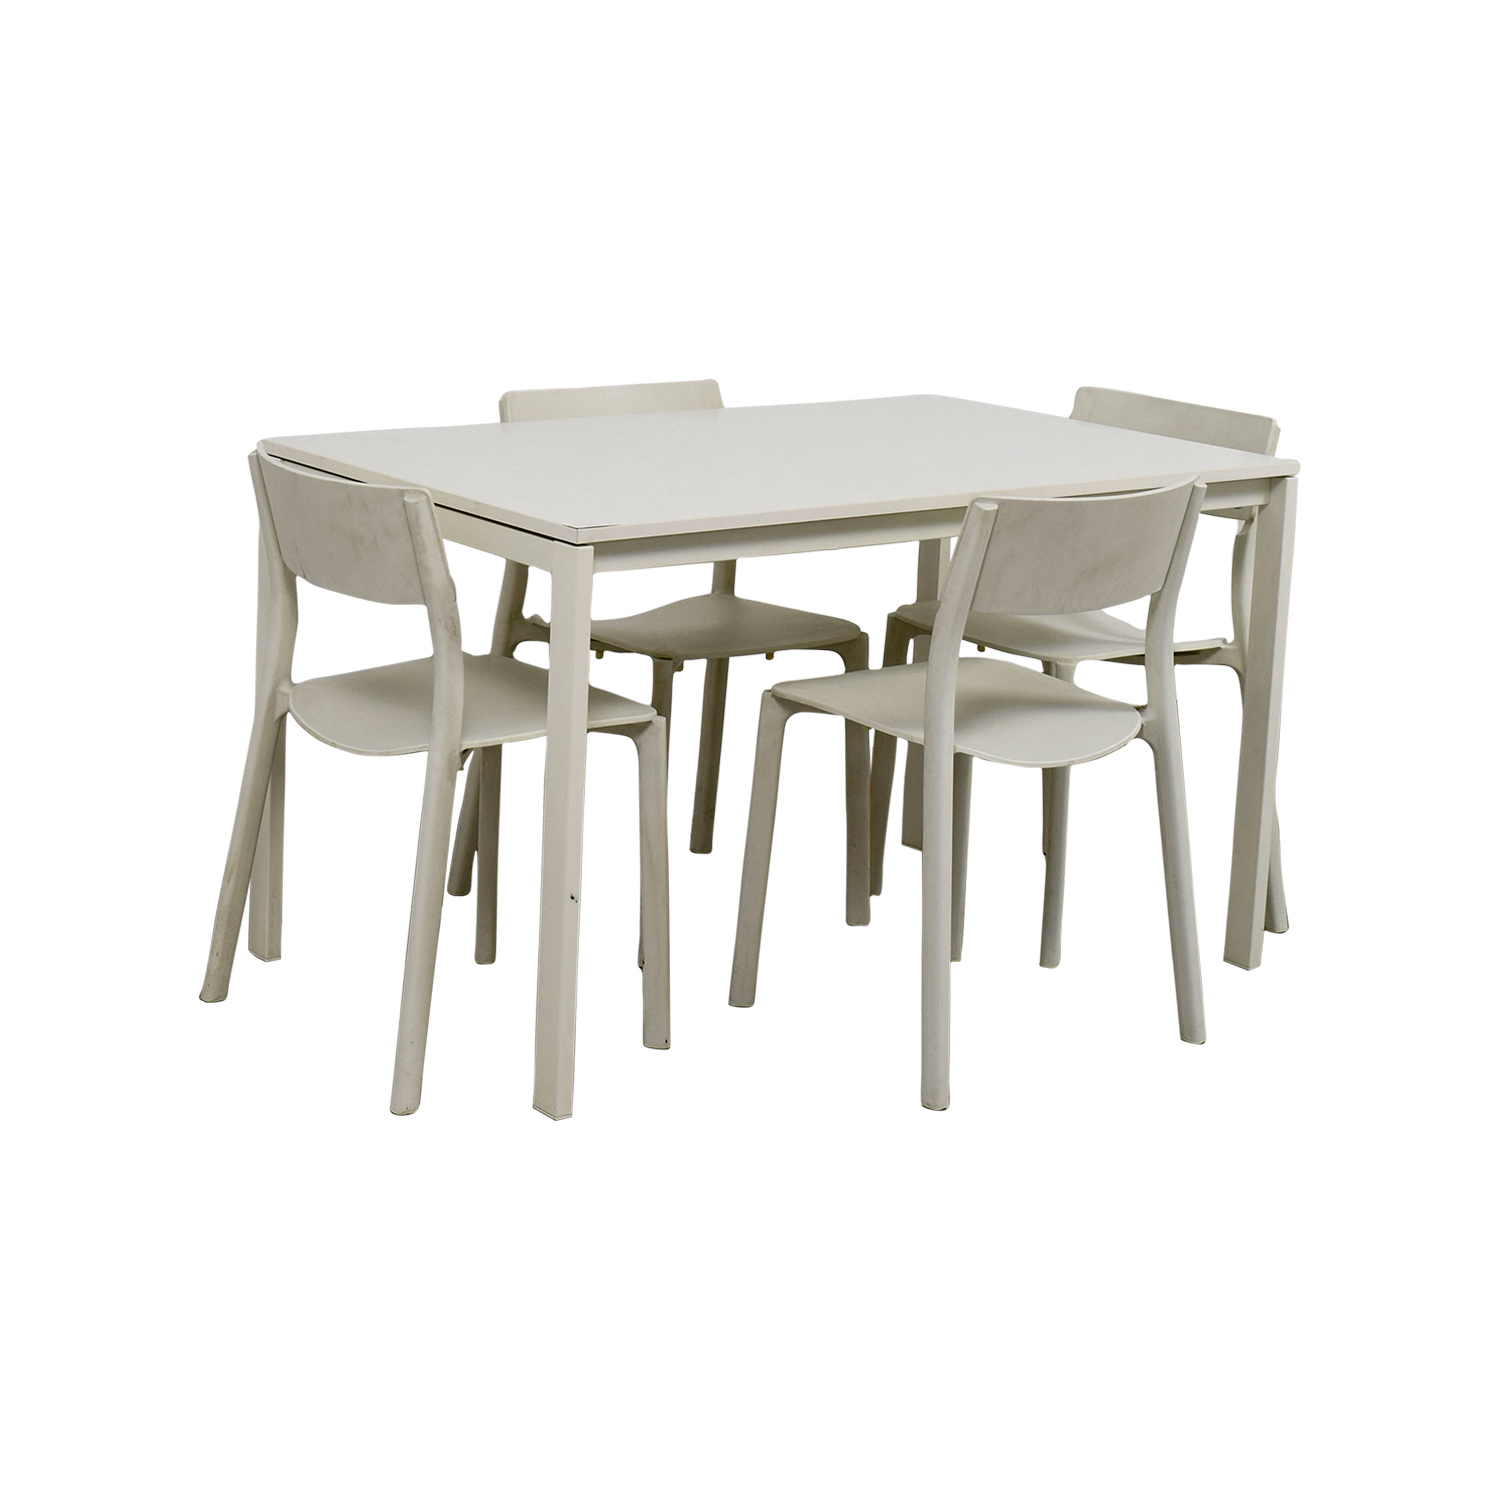 65 off ikea ikea white kitchen table and chairs tables for Ikea dining sets usa